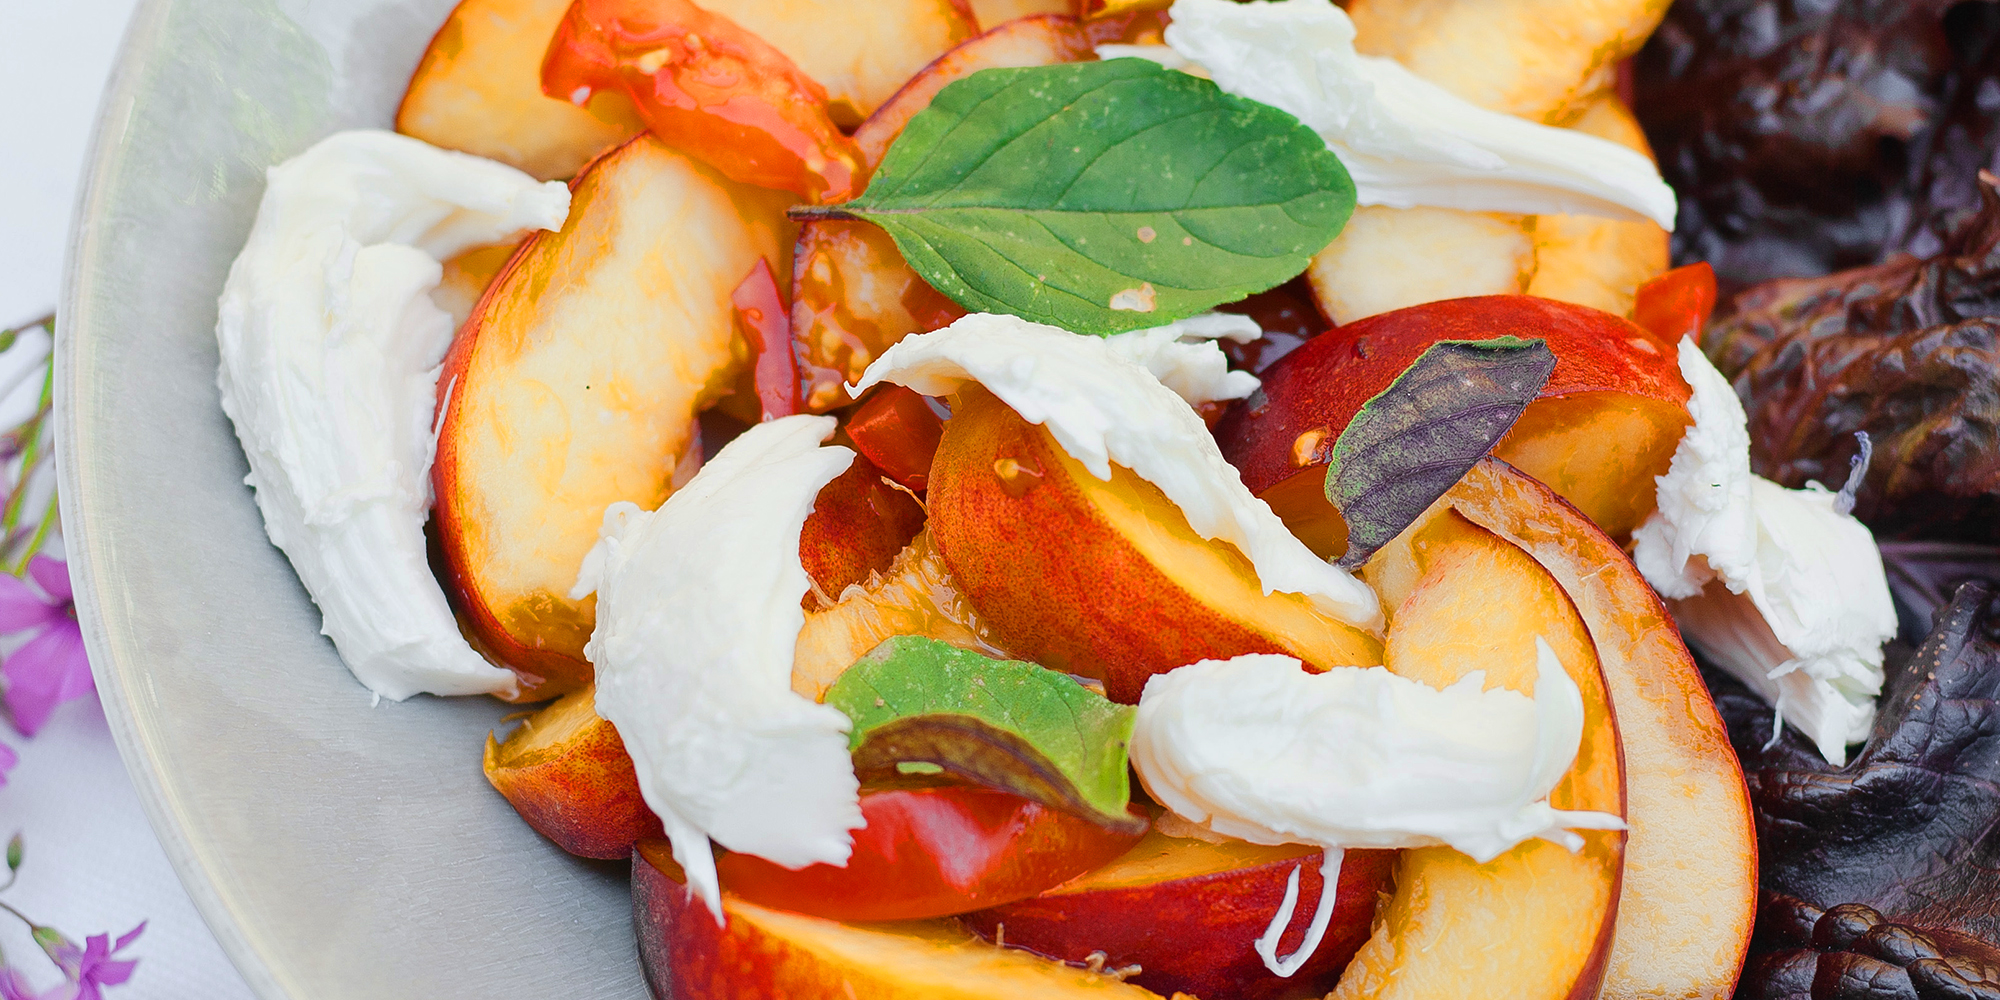 Summer salad with burrata, tomatoes, and nectarines